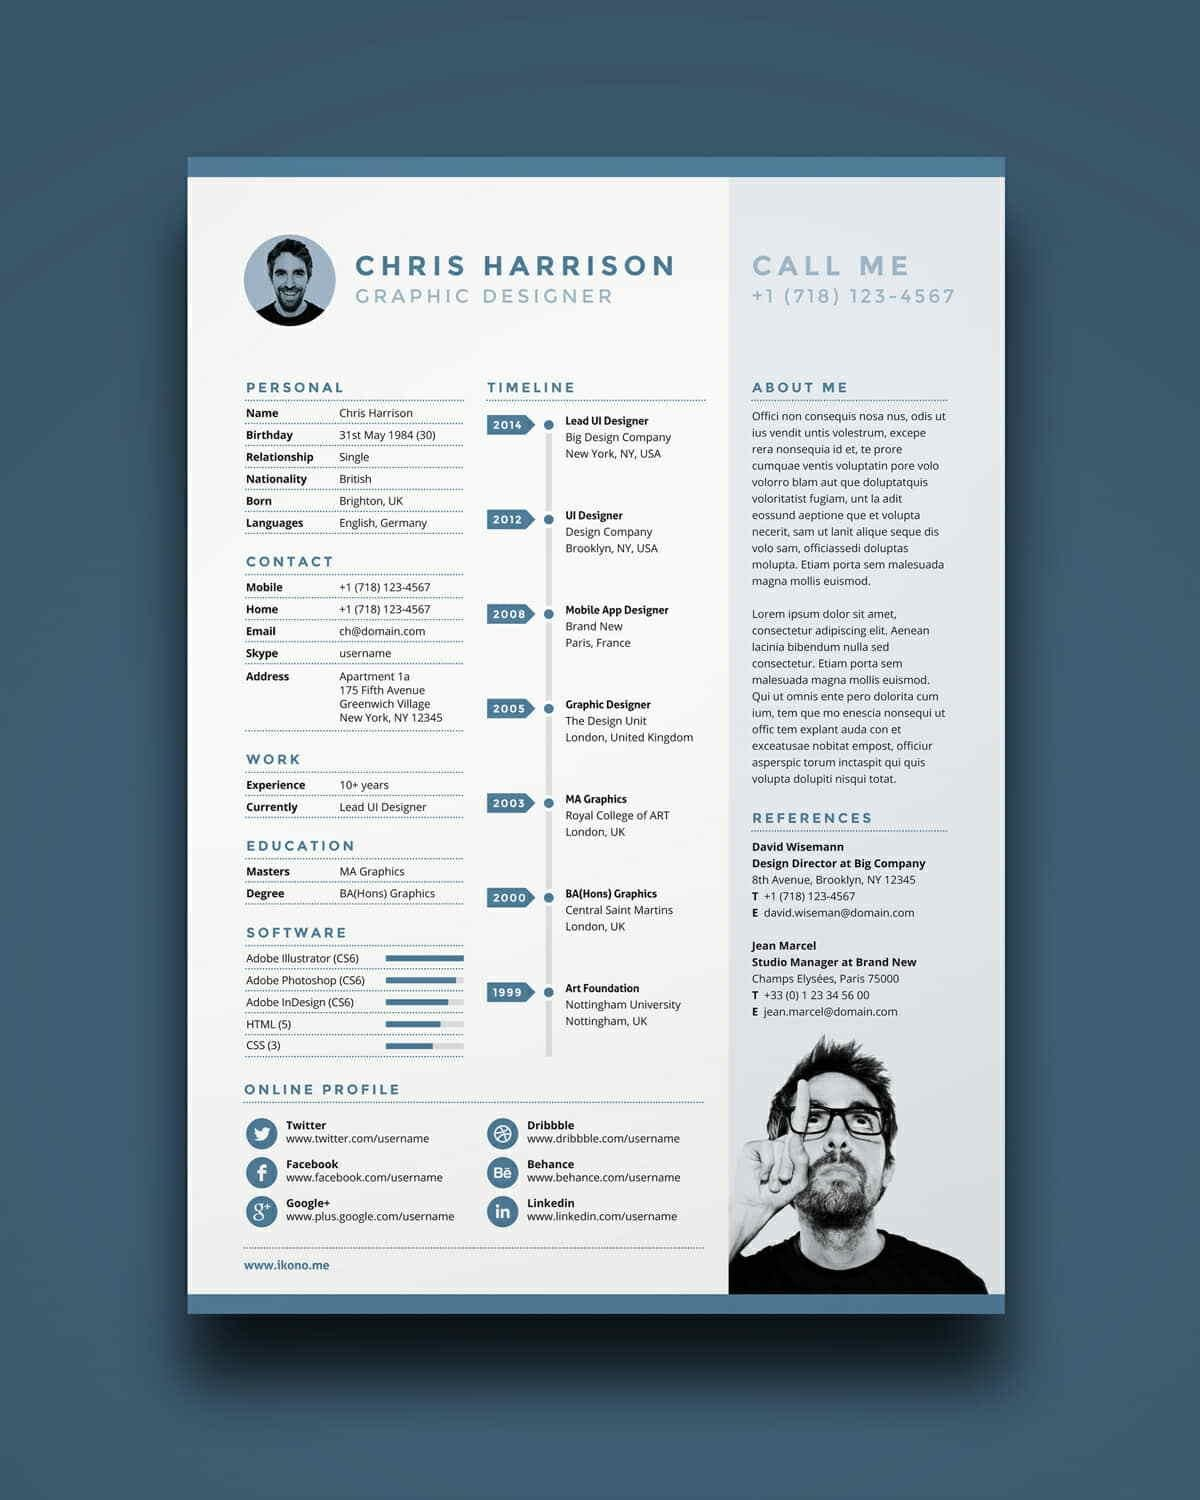 Free resume templates 17 downloadable resume templates to use blue free sample resume with long experience section yelopaper Choice Image